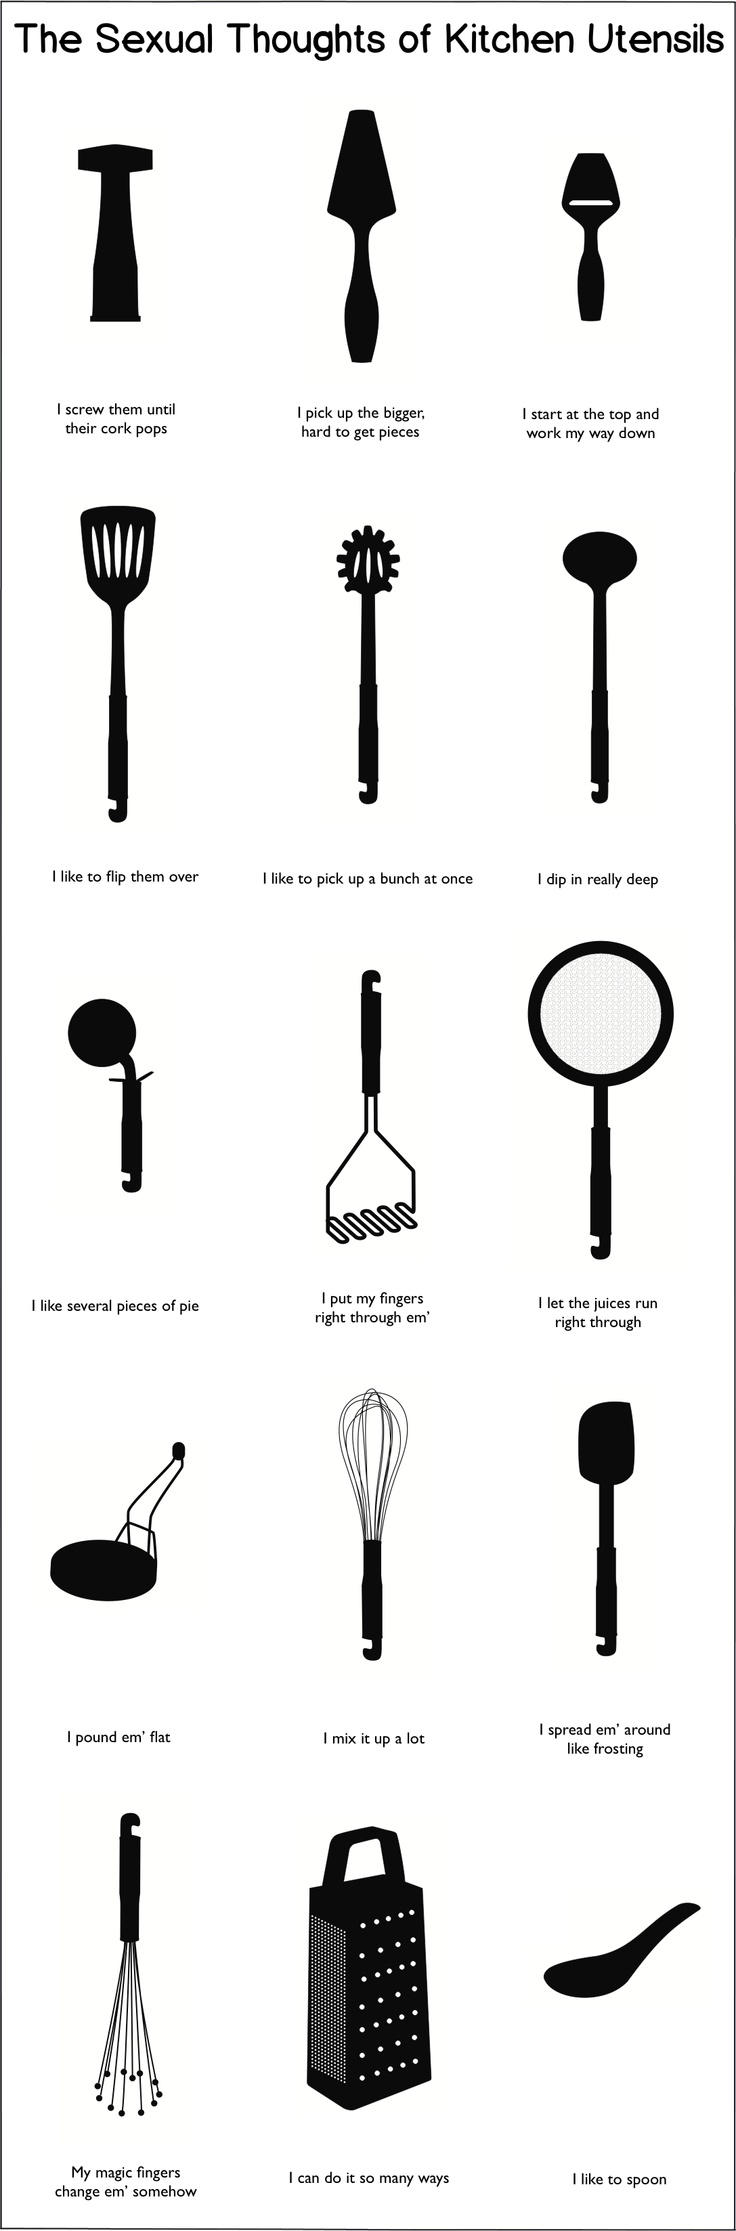 If your kitchen utensils could talk, and they were players, they might say this